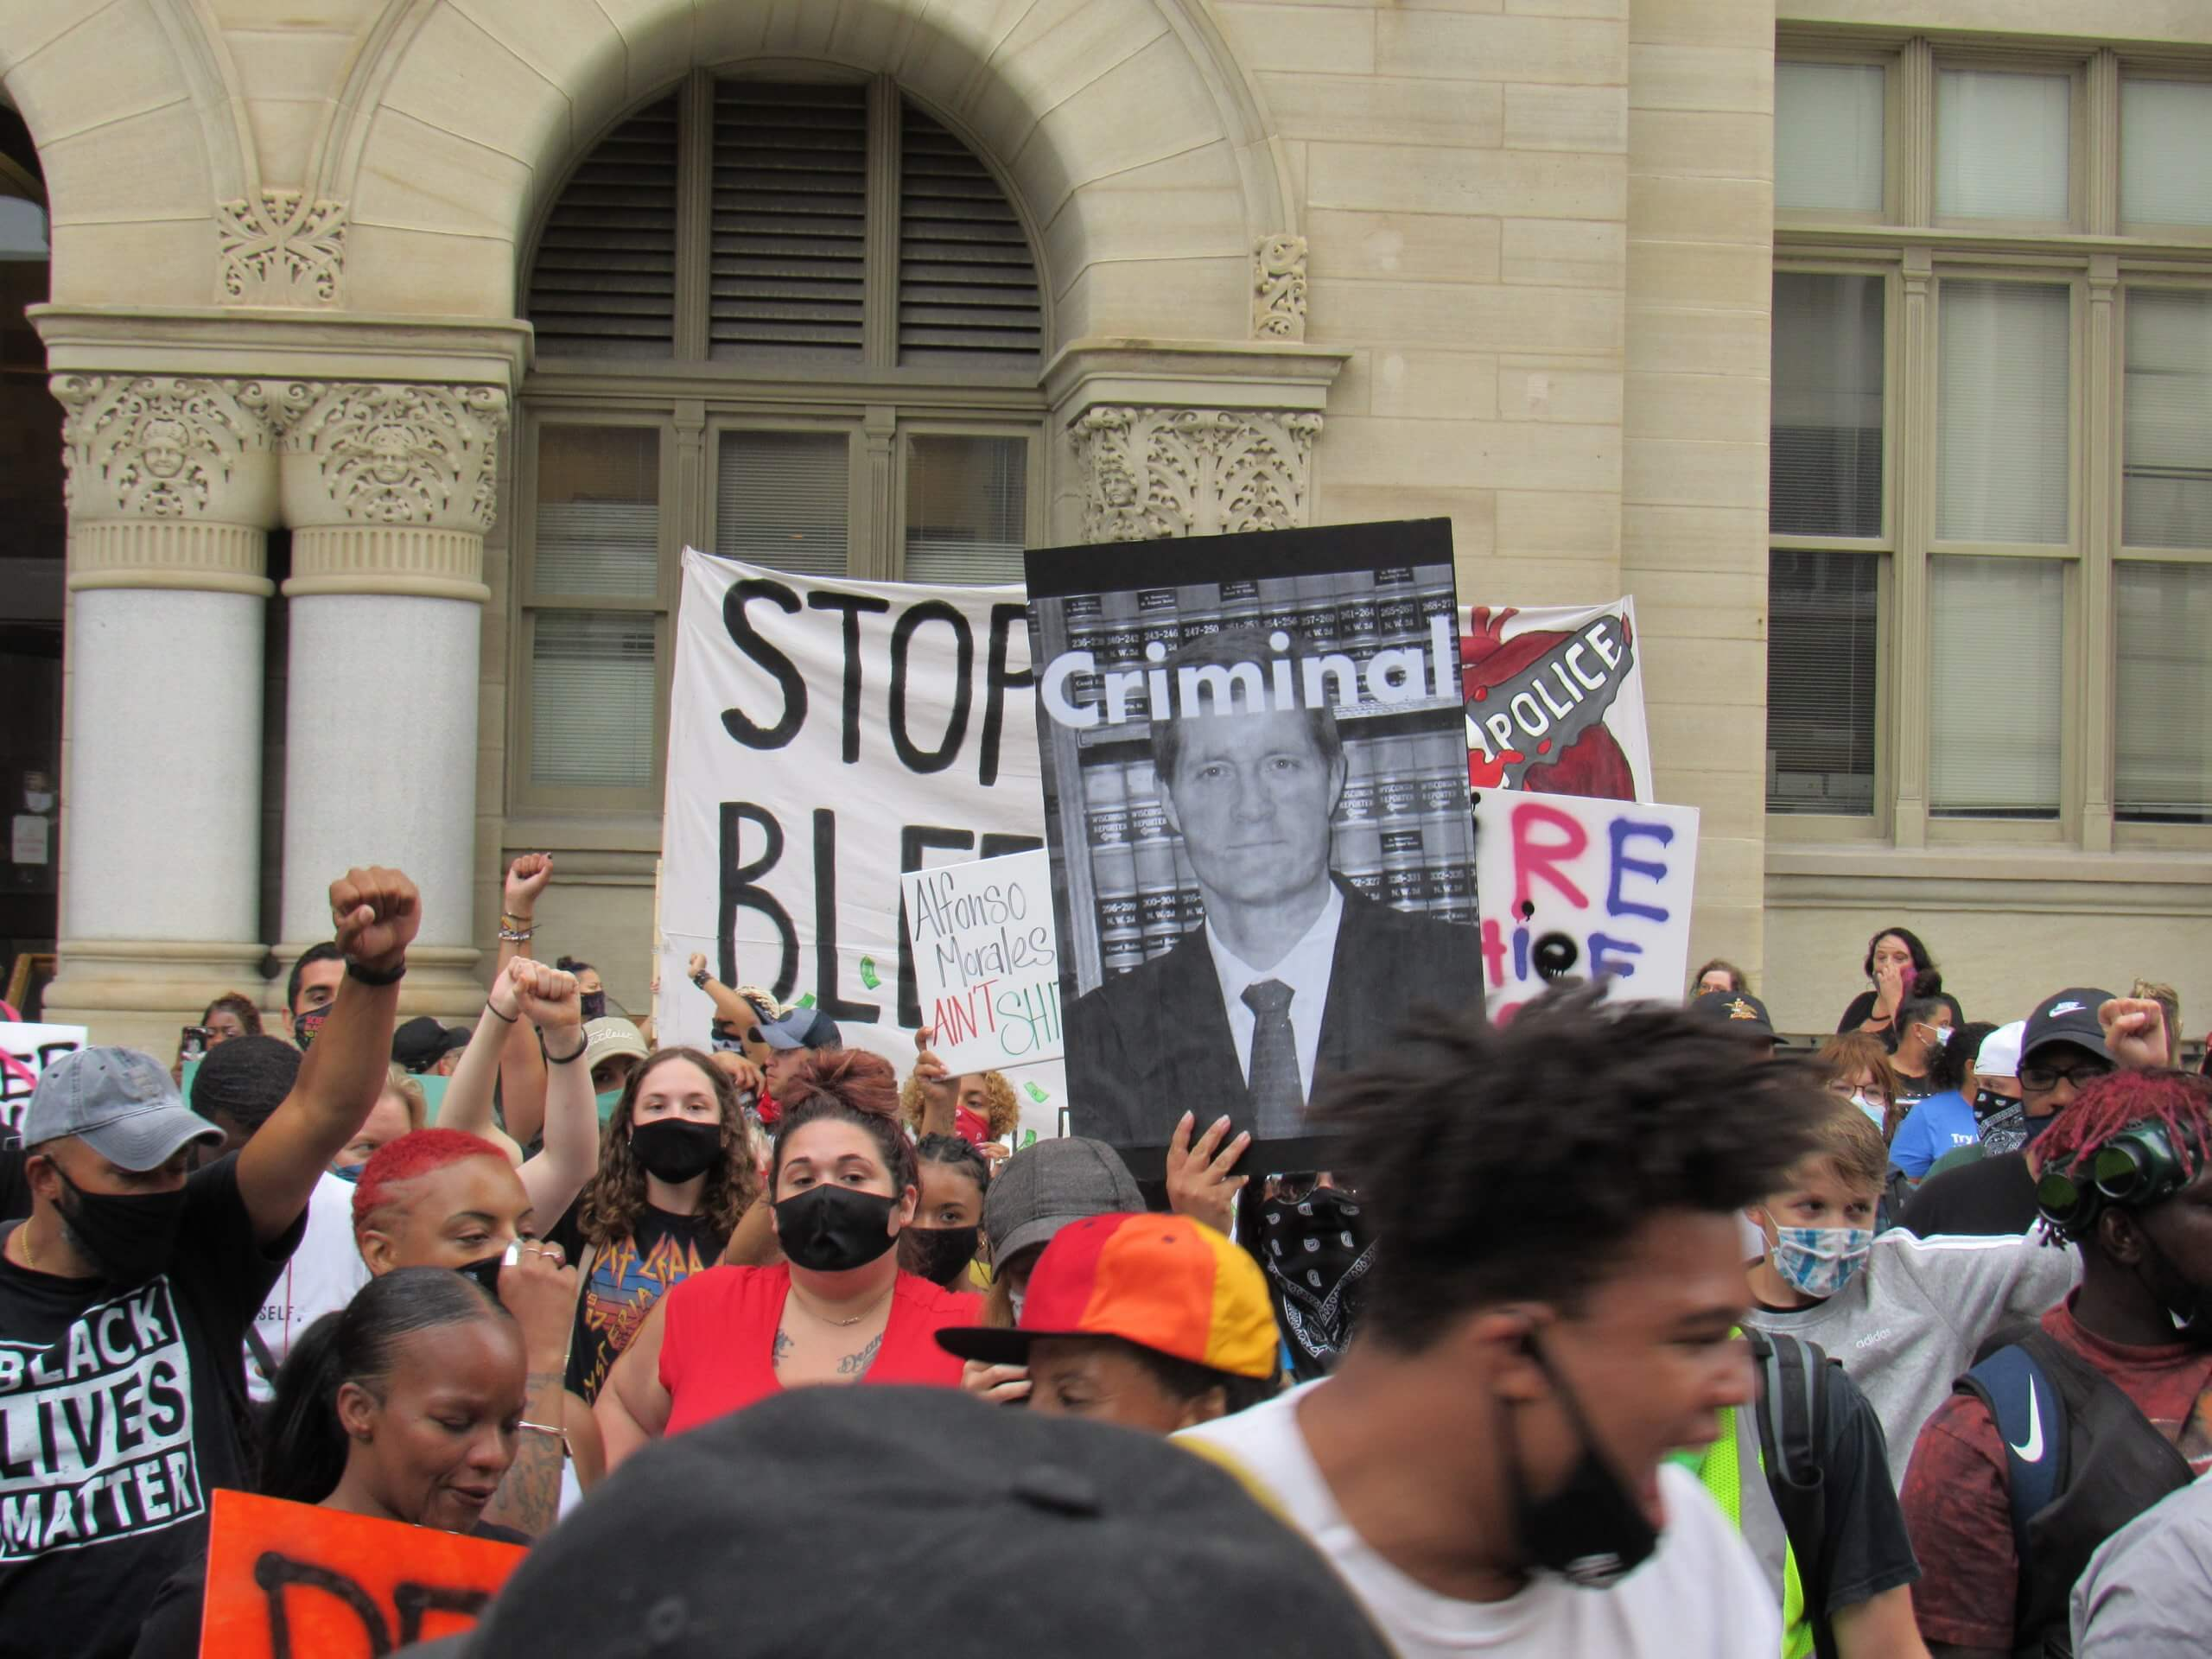 Black Lives Matter protesters gather and march to the Milwaukee City Hall. Many called for the removal of Milwaukee police Chief Alfonso Morales. Calls have been growing against District Attorney John Chrisholm as well. (Photo by Isiah Holmes)